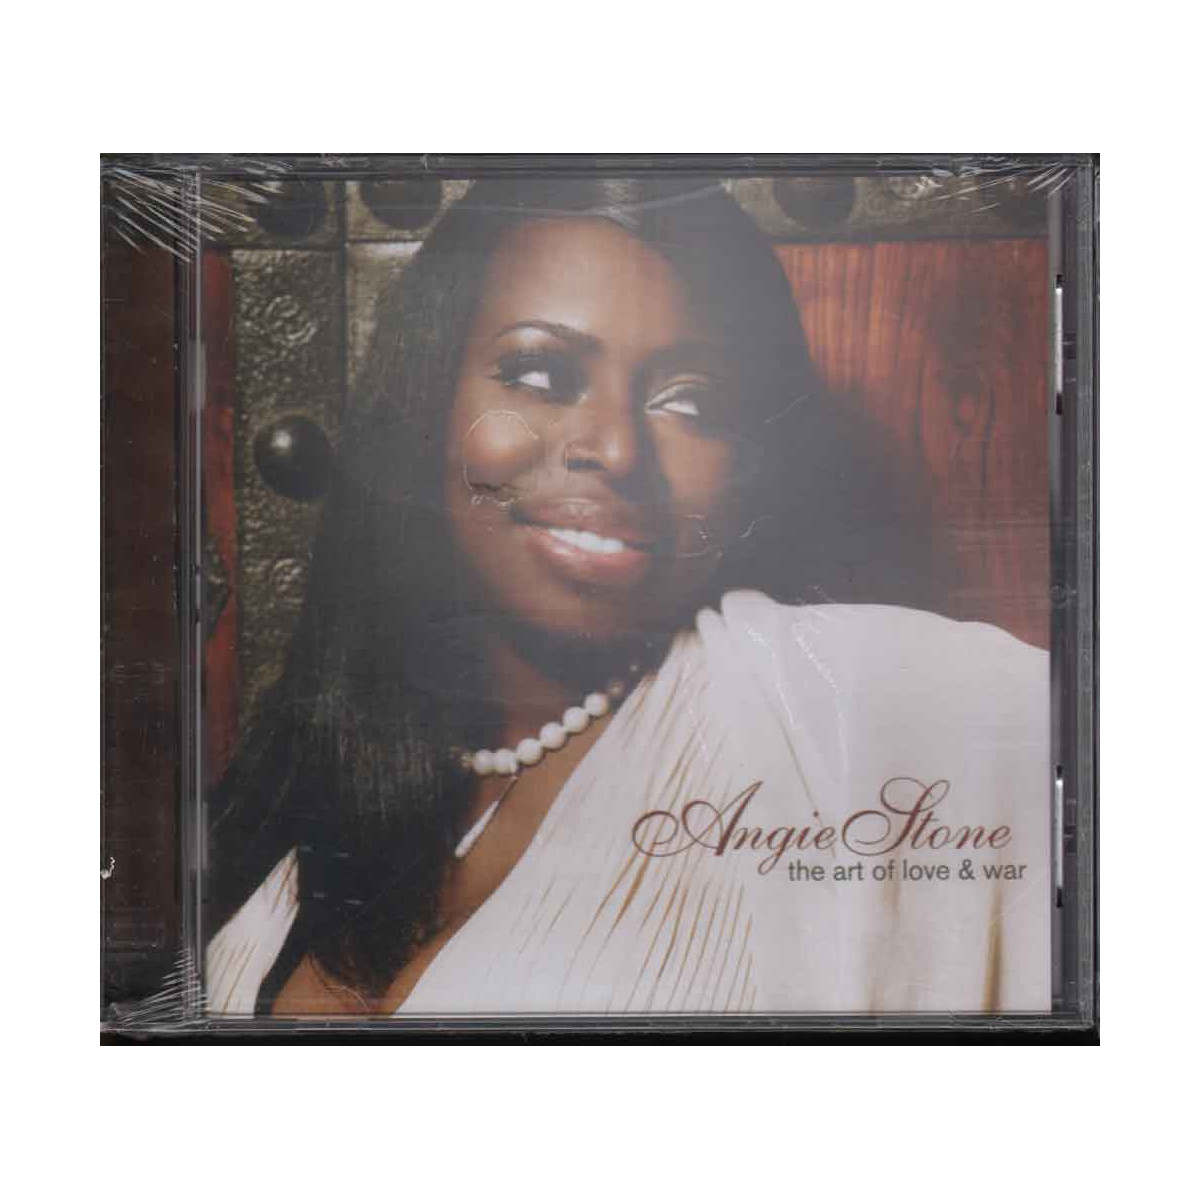 Angie Stone CD The Art Of Love & War - Stax Nuovo Sigillato 0888072301467